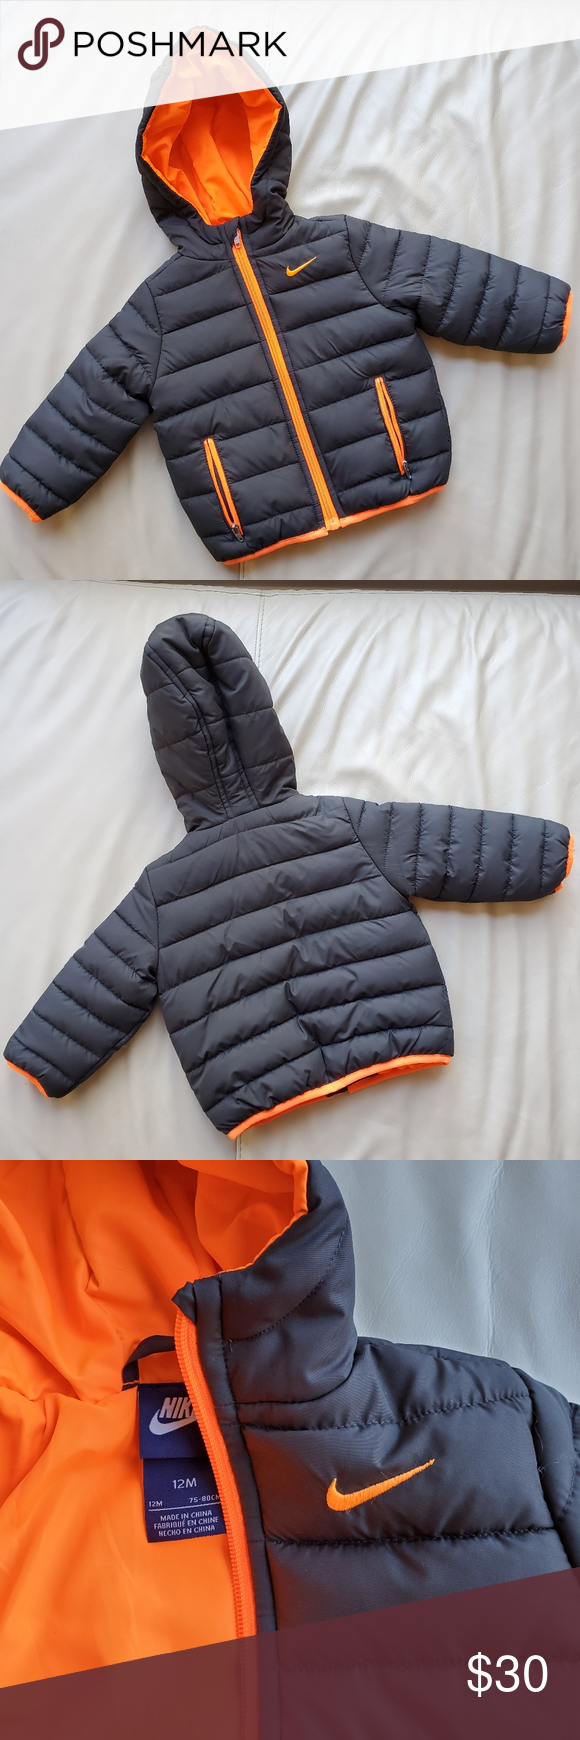 Nike Hooded Puffer Jacket Quilted Puffer Jacket Jackets Puffer Jackets [ 1740 x 580 Pixel ]